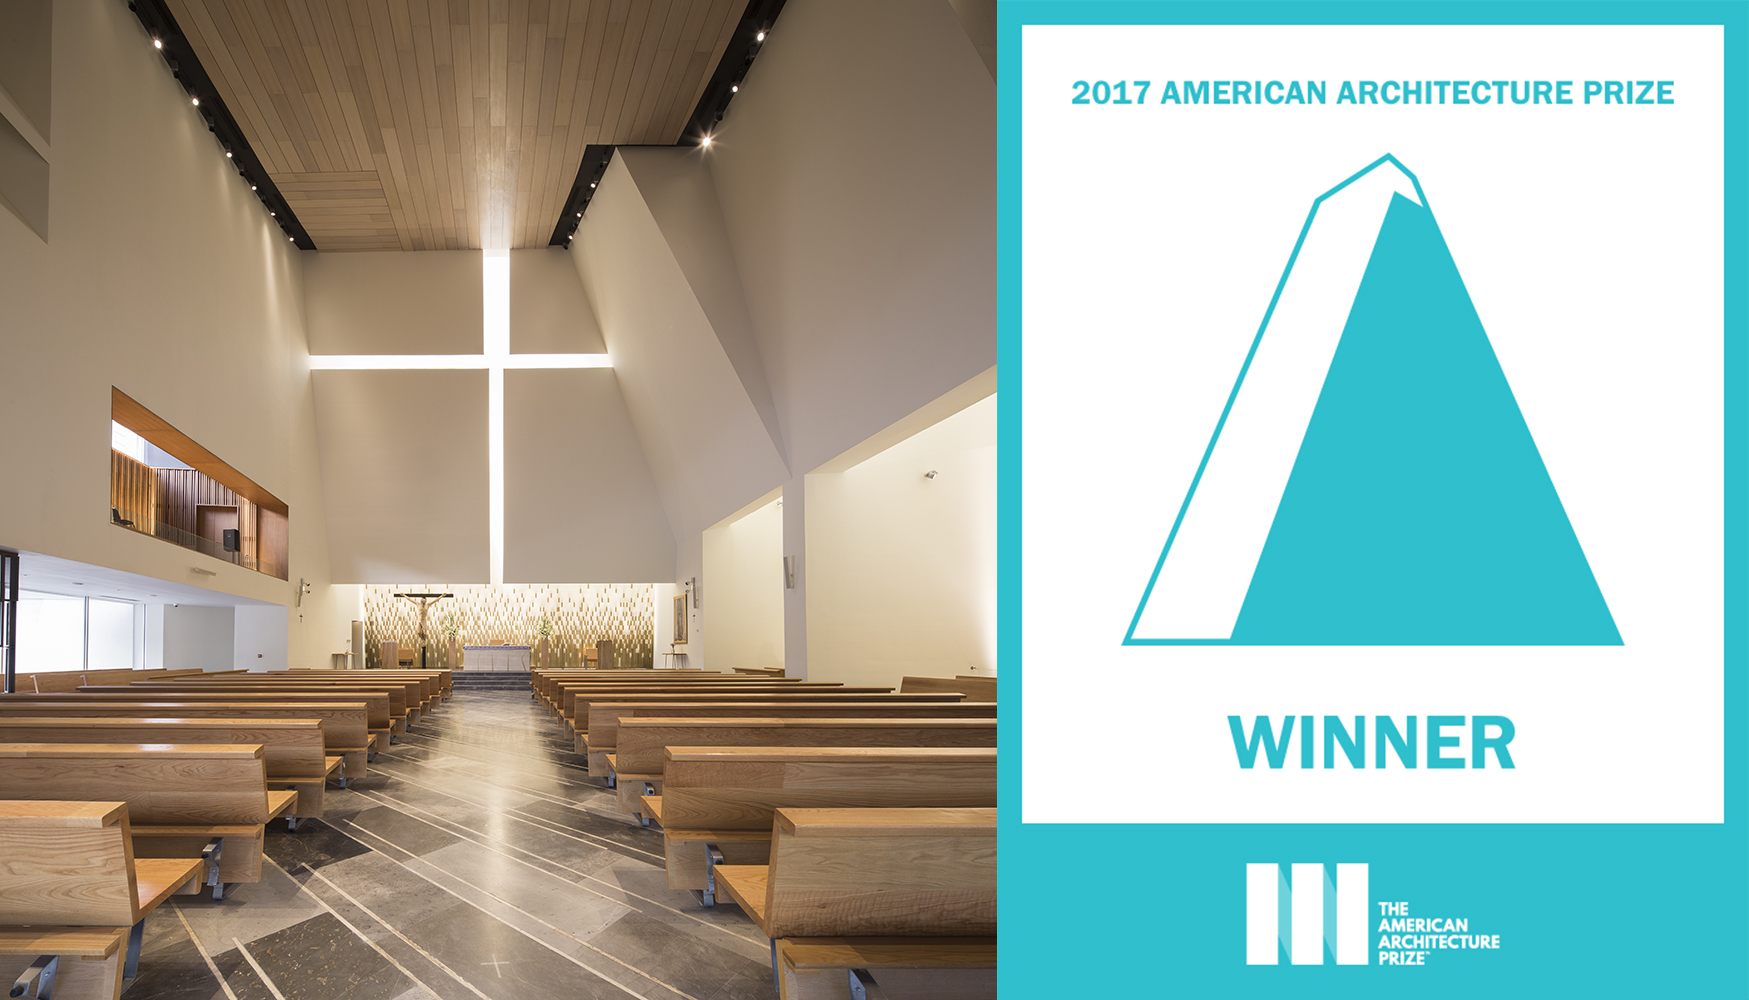 Winners of the American Architecture Prize 2017